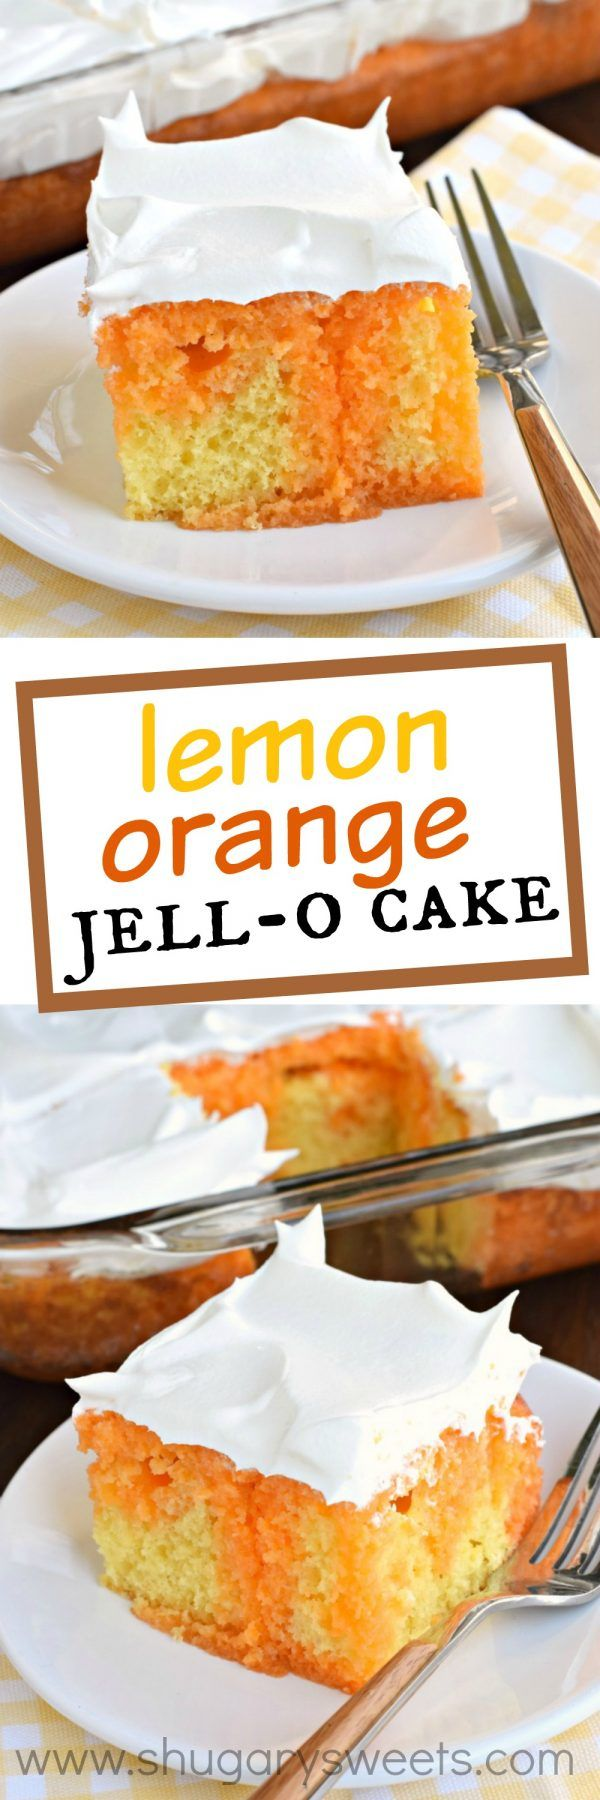 This Lemon Orange JELL-O cake is a refreshing treat at the end of the day. Made with a lemon cake and orange gelatin, you'll love the texture!